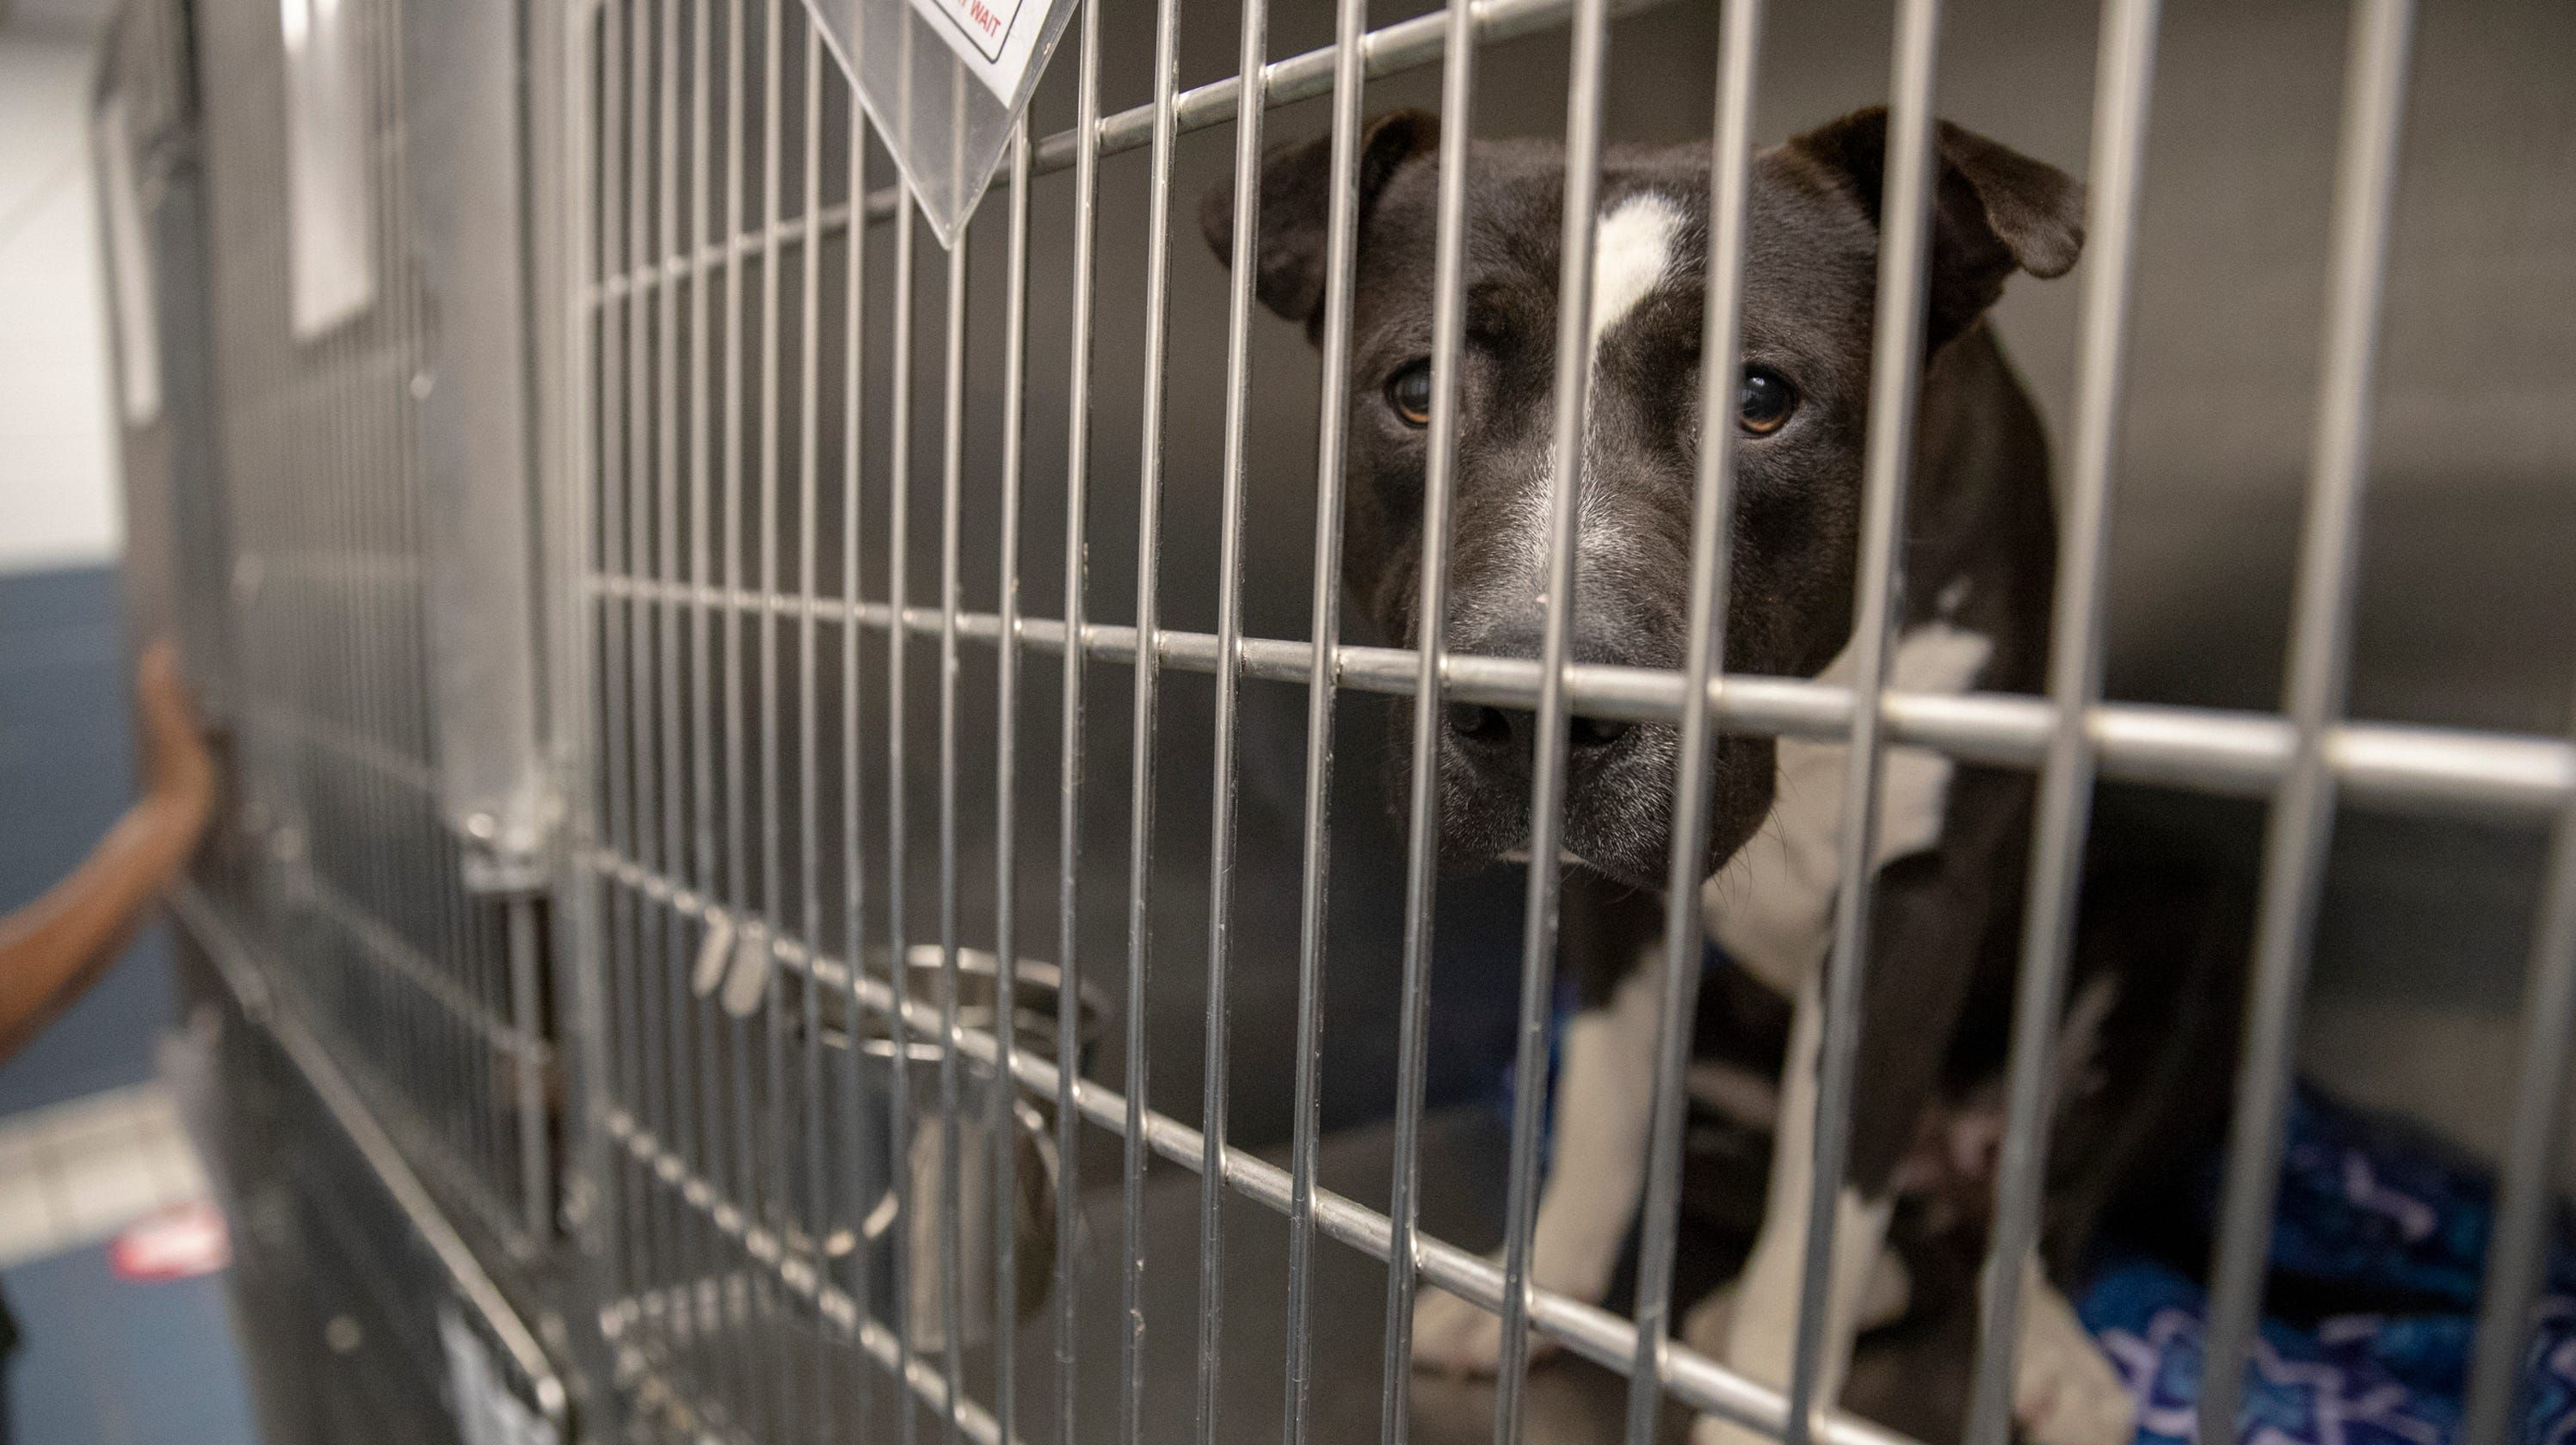 If pet adoptions don't pick up, 'tough decisions' will be